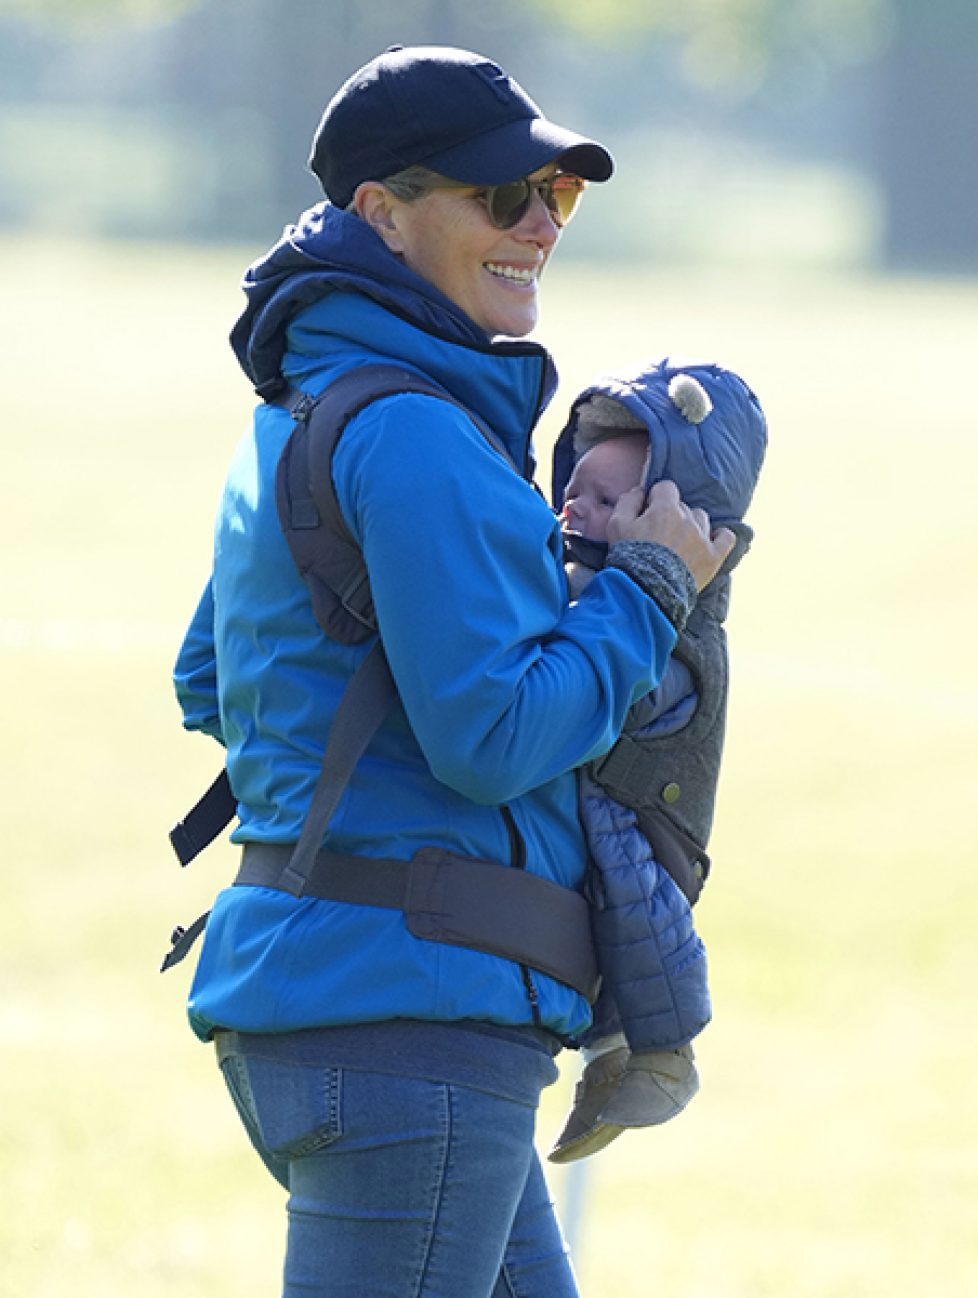 zara-tindall-with-lucas-houghton-hall-international-horse-trials-z